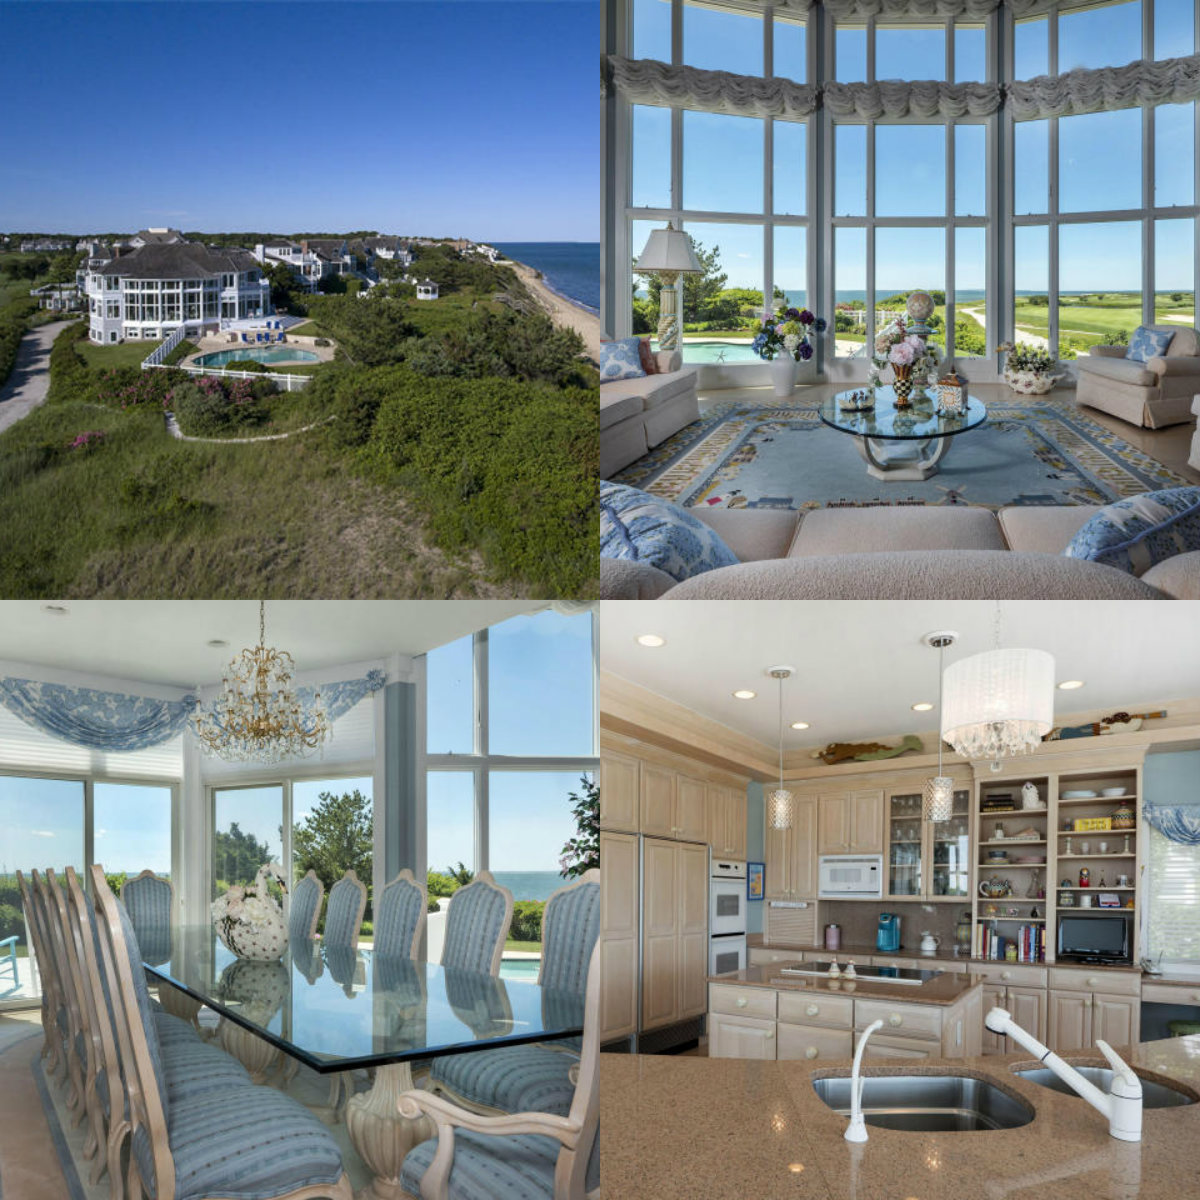 4 images of 134 Shore Drive West New Seabury in Cape Cod MA